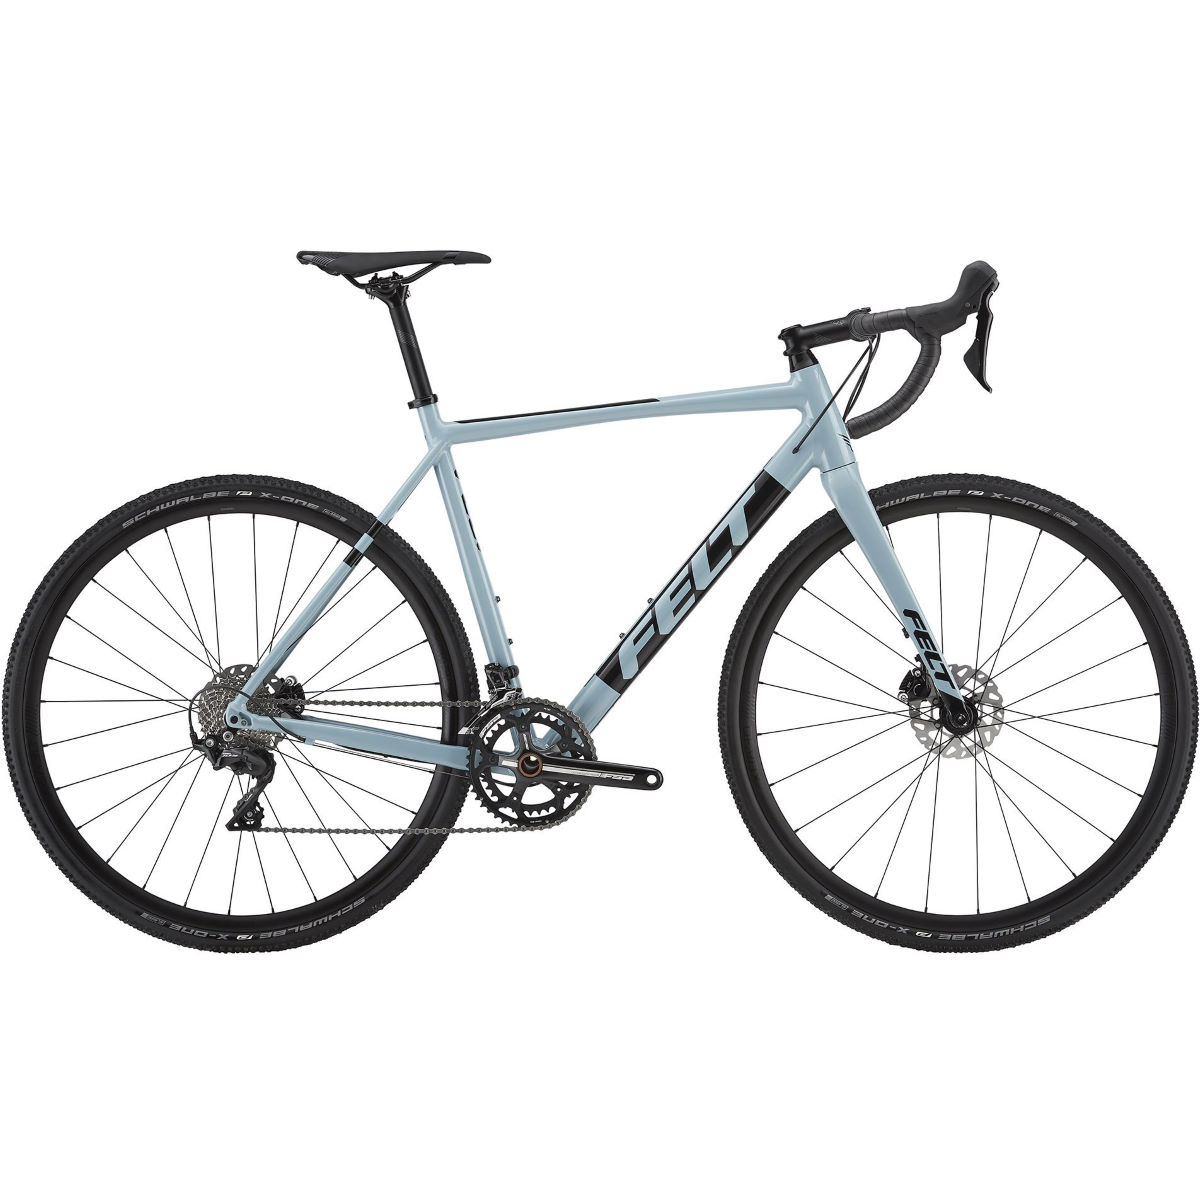 Image of Vélo de cyclo-cross Felt F30X (30) - 53cm Mist Blue